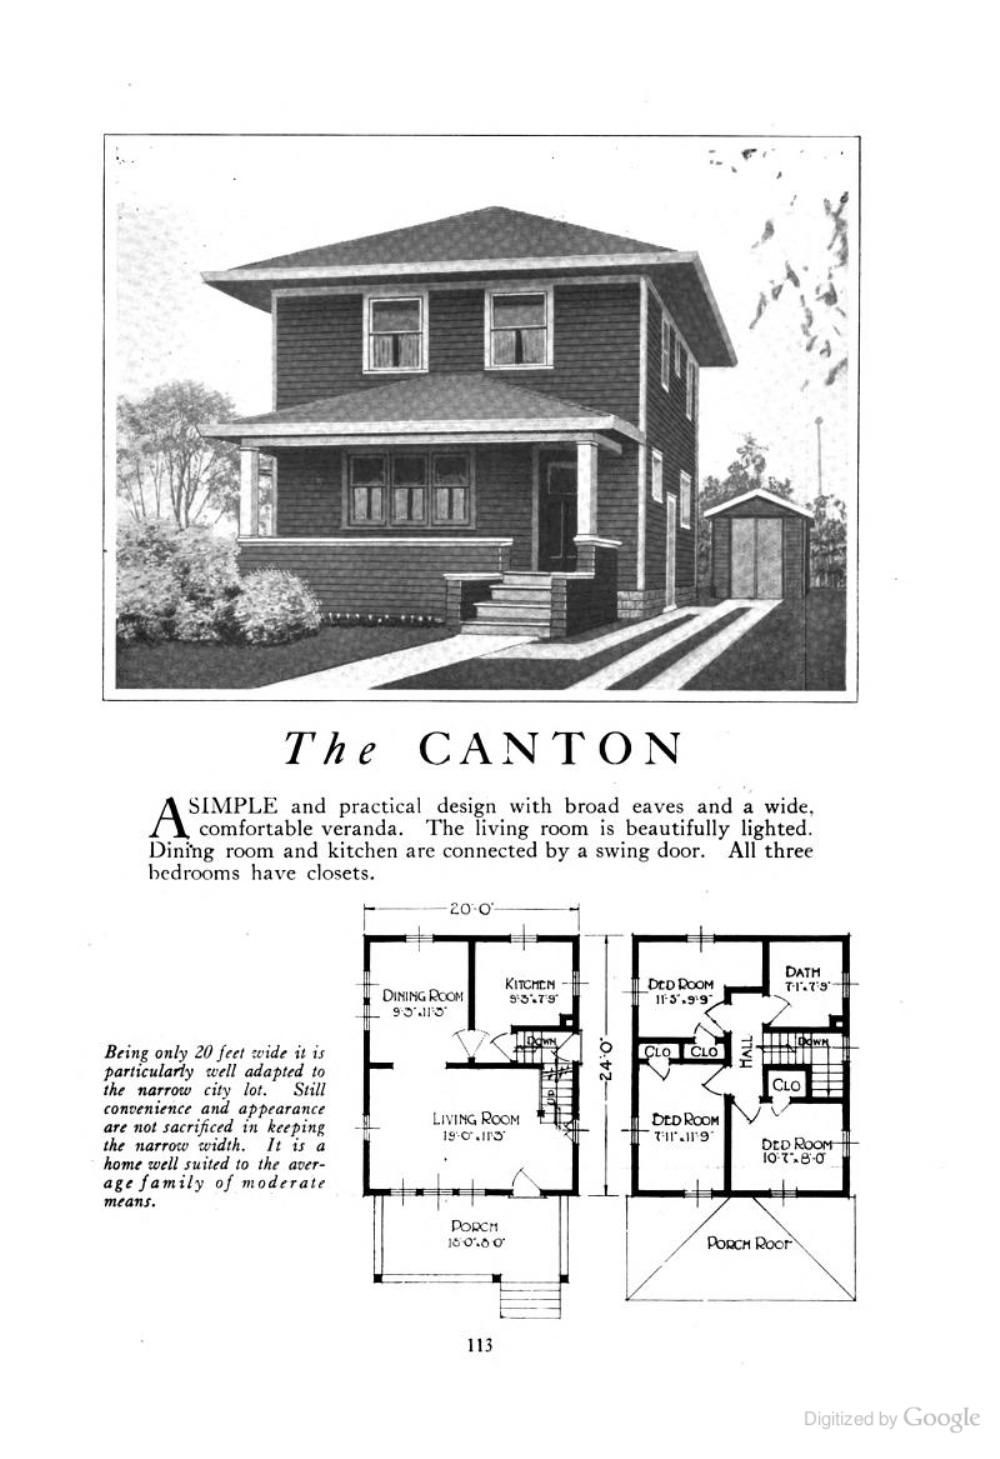 The Canton (an American Foursquare kit house/house plan